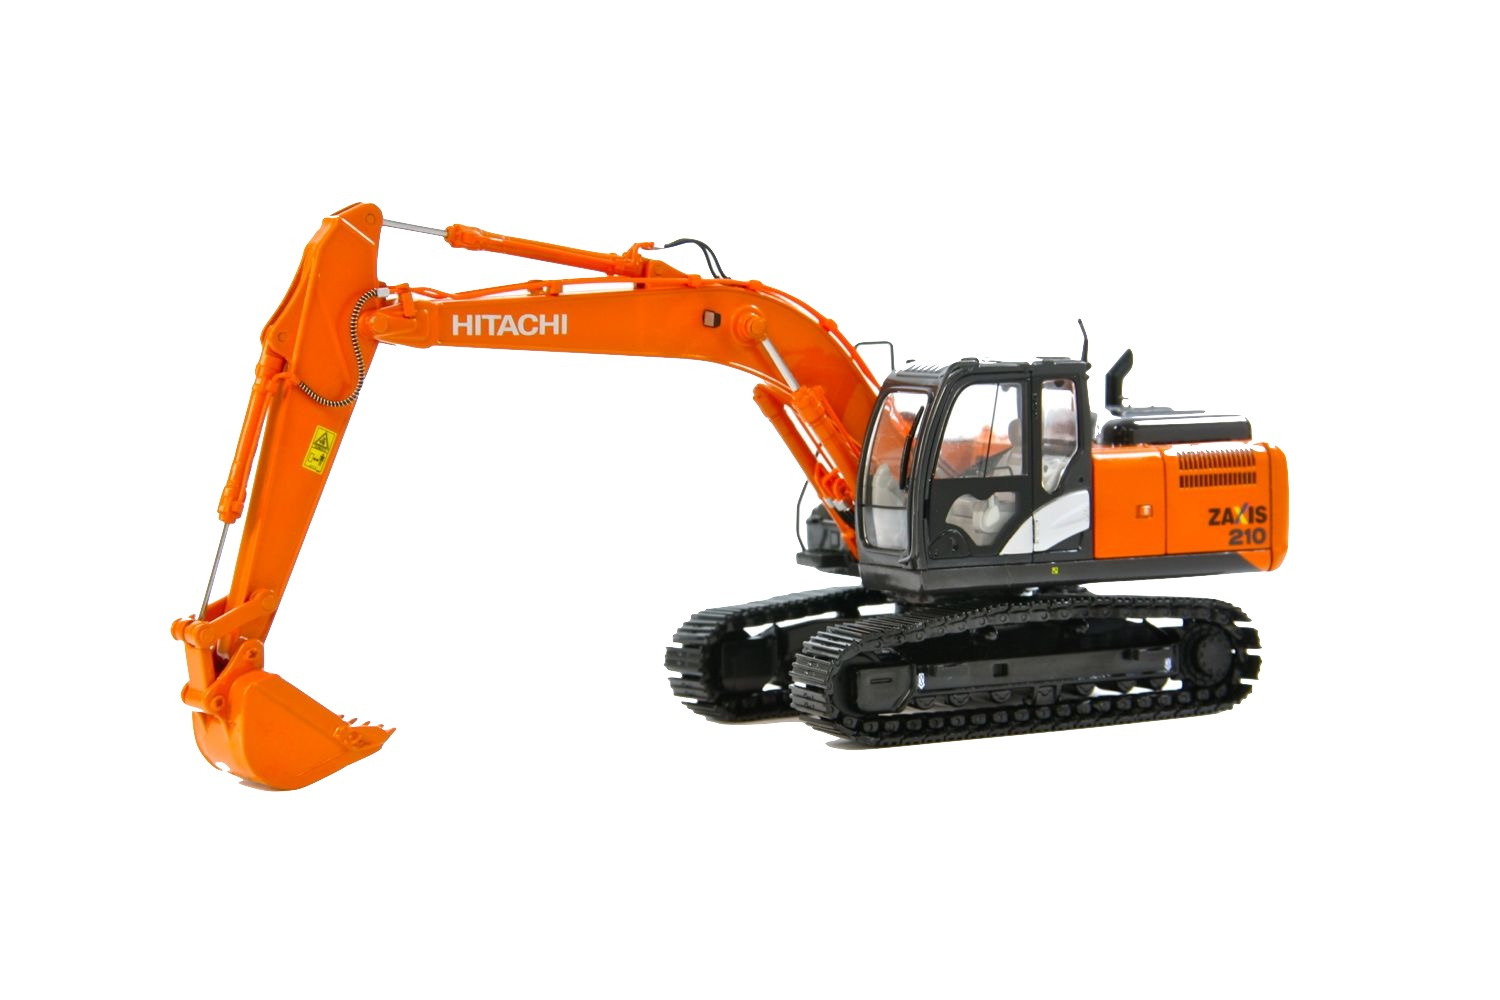 Pages from WDCDEN00 – Hitachi ZX 200-5G, 200LC-5G, 210H-5G, 210LCH-5G,  210K-5G, 210LCK-5G Hydraulic Excavator Workshop Manual